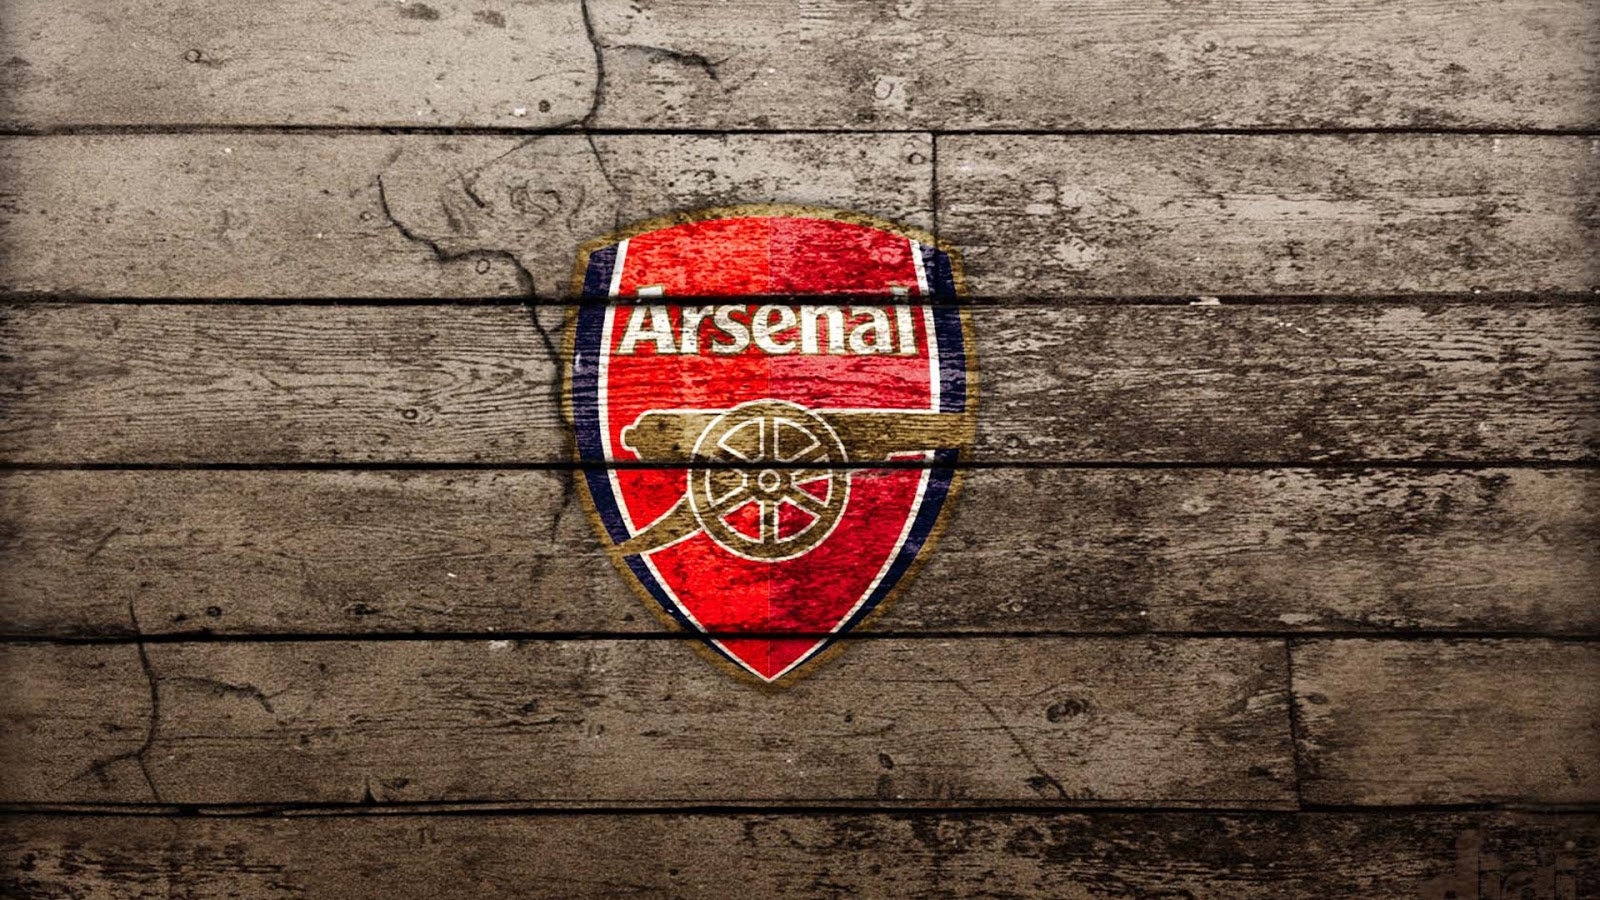 Arsenal HD Wallpapers 2013 2014 Football News And Updates 1600x900